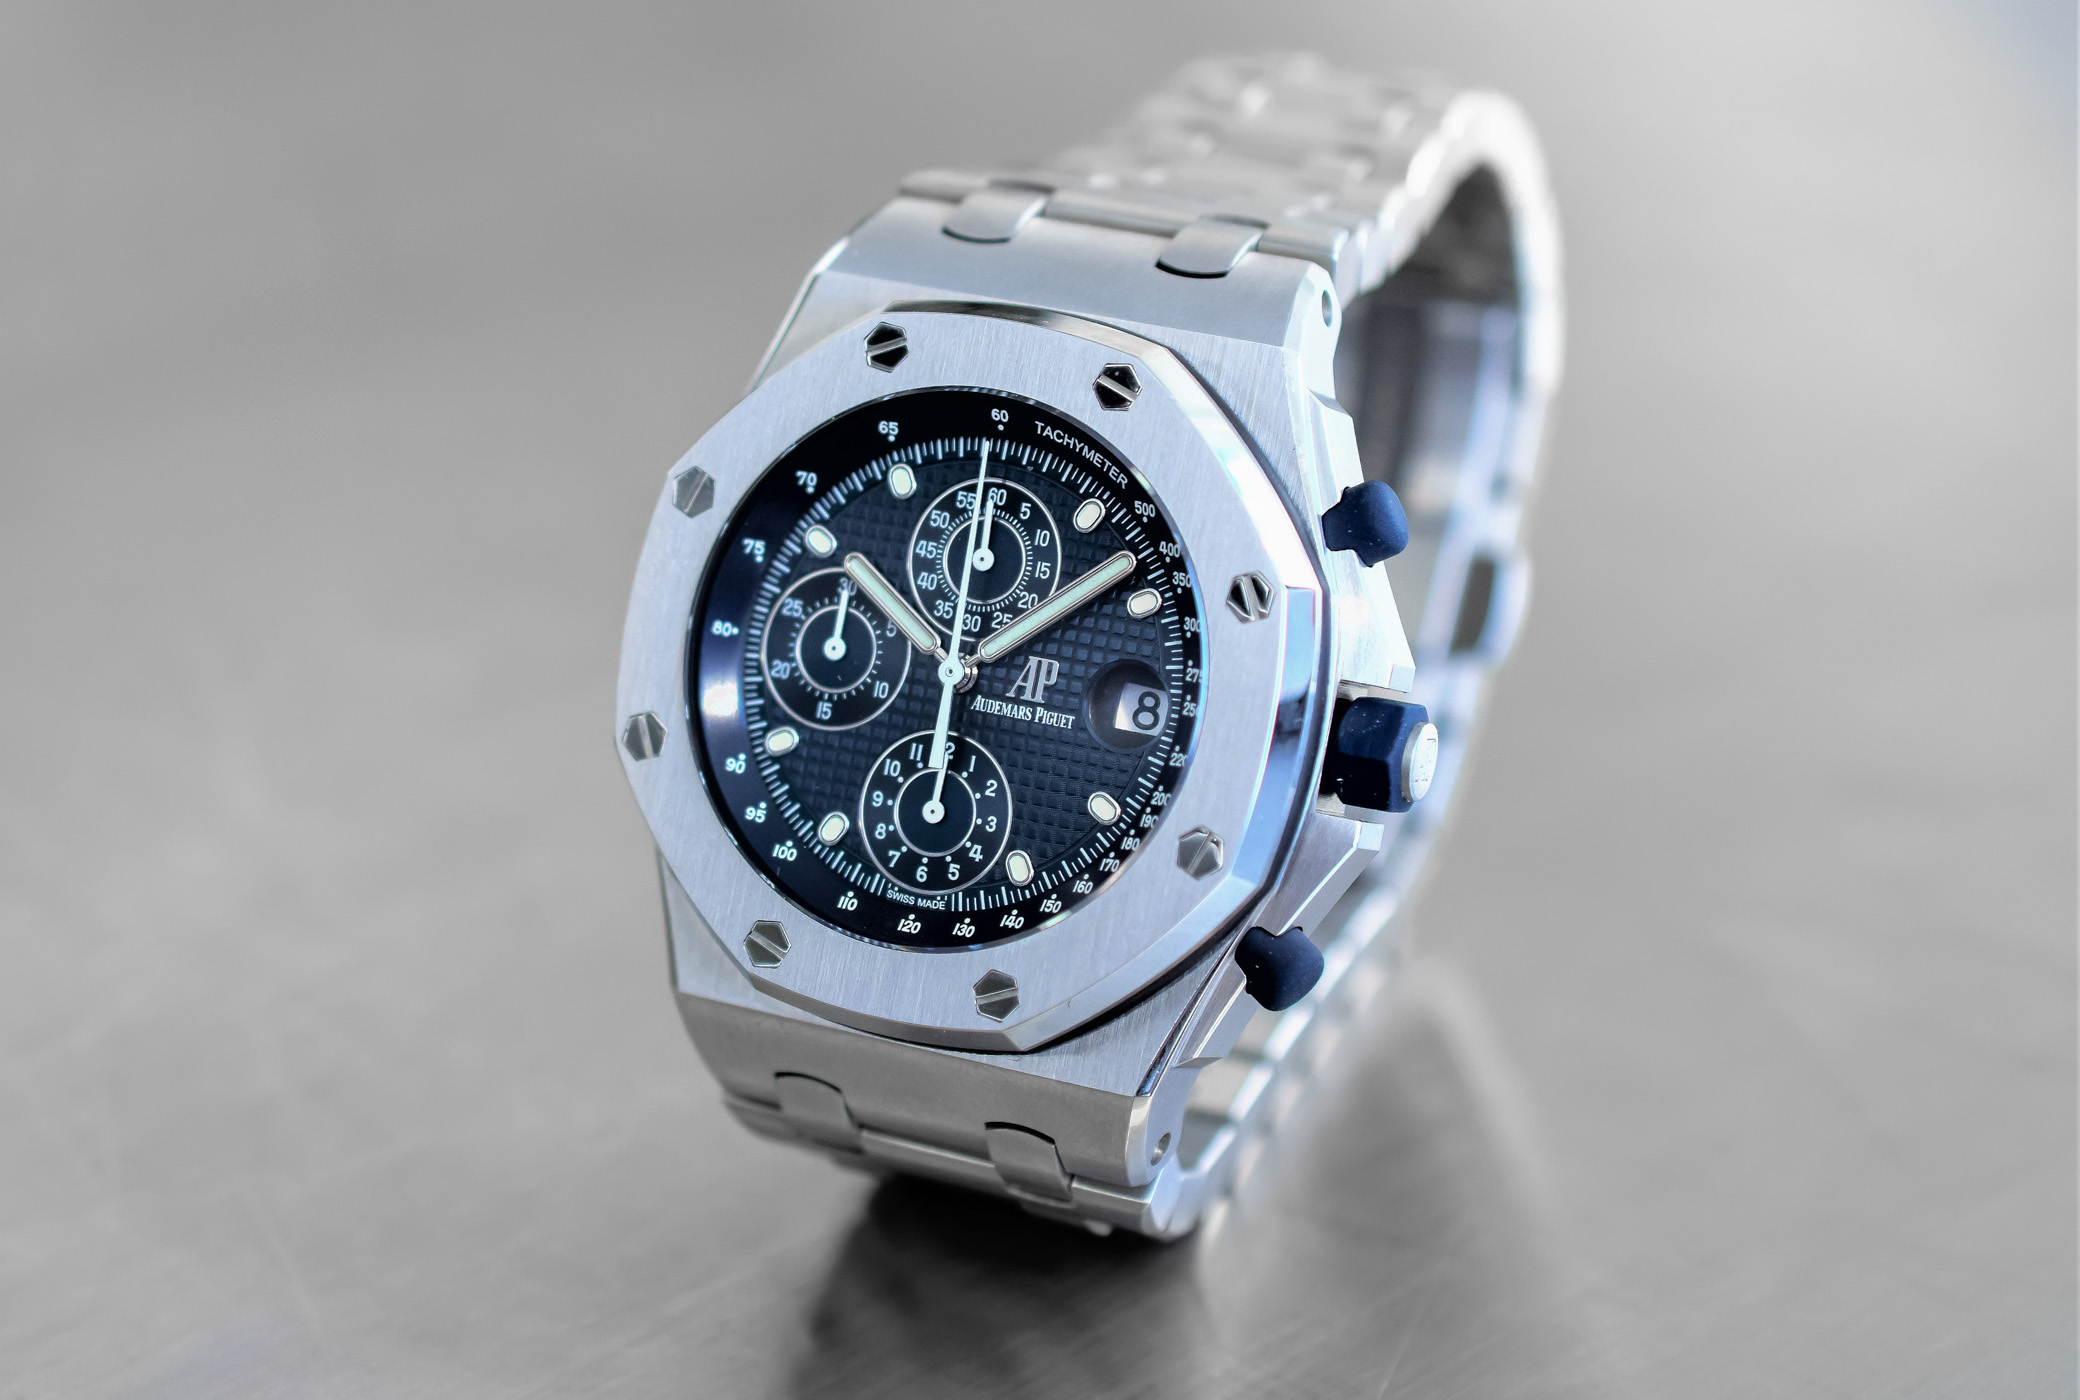 pre sihh 2018 audemars piguet royal oak offshore chronograph re